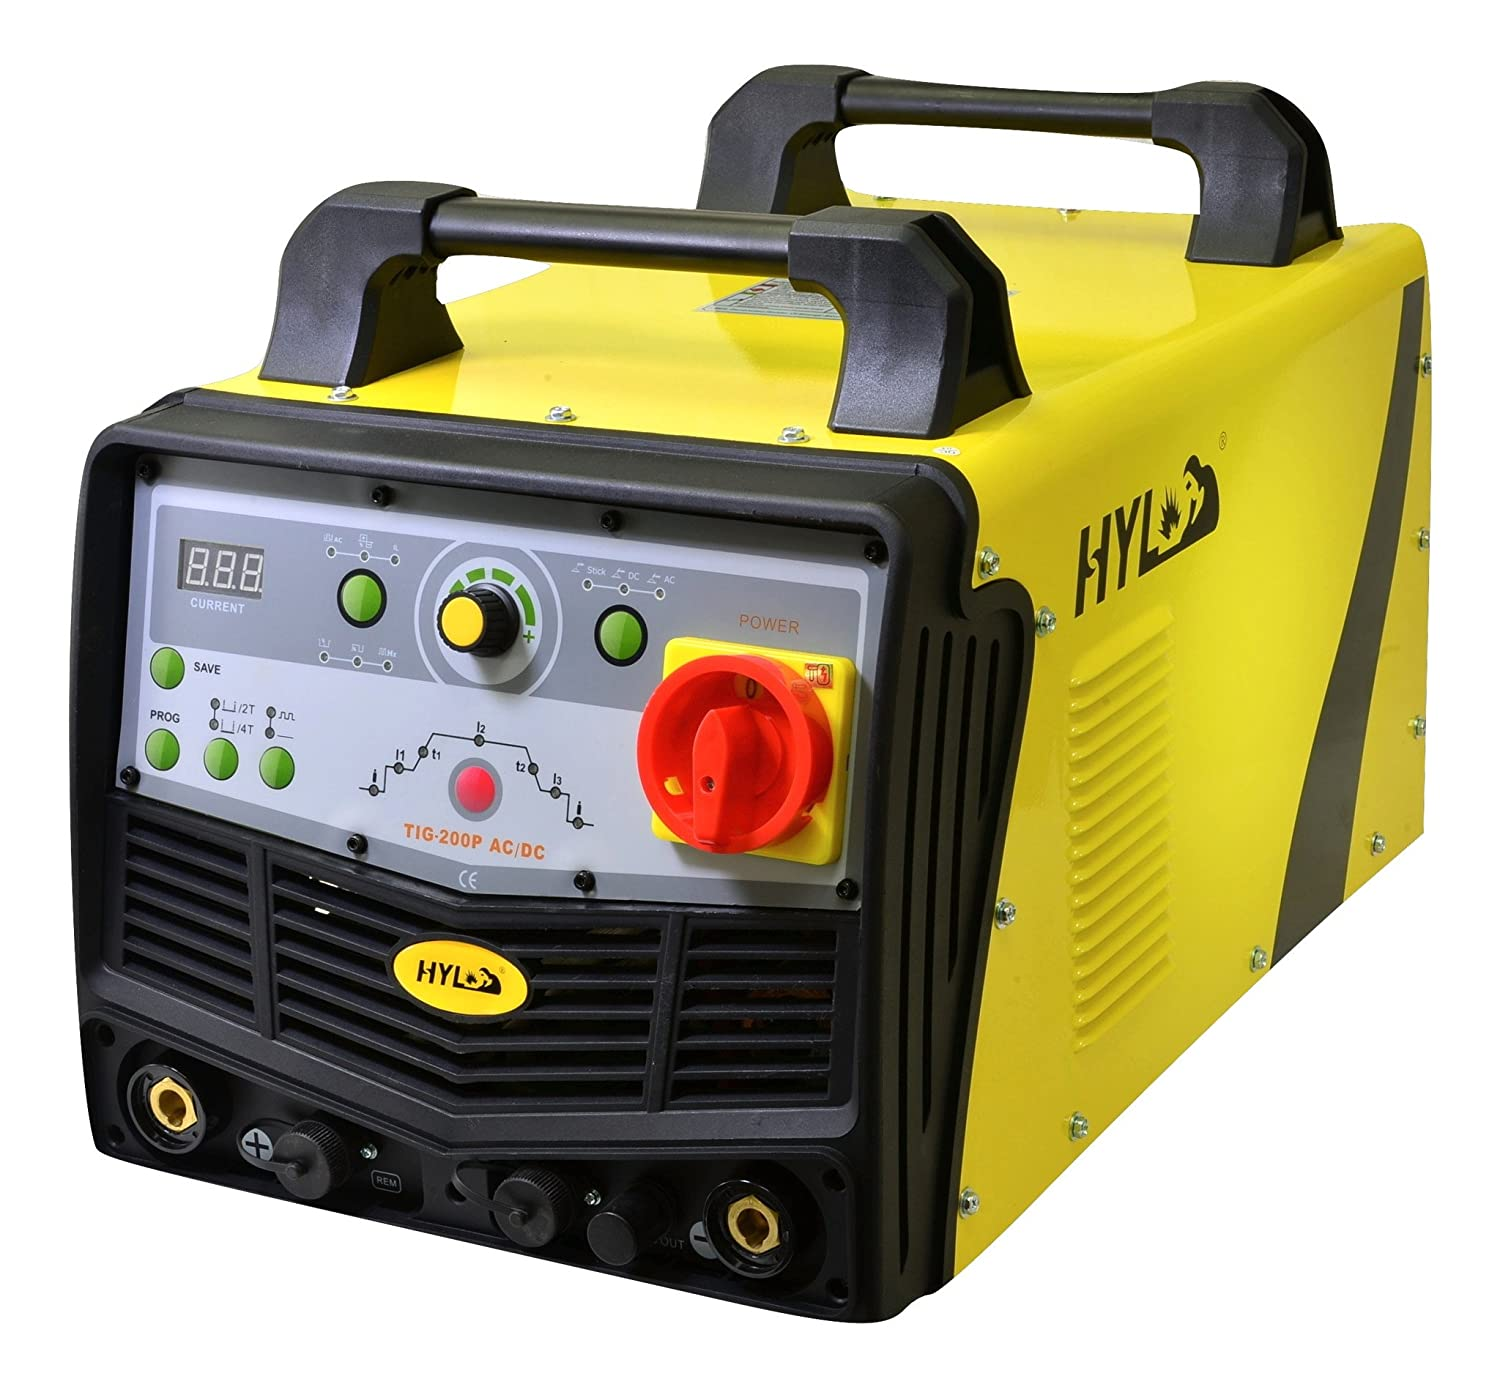 Hyl Tig 200p Ac Dc Digital Welder Compare To Miller Hobart Lincoln Foot Pedal Wiring Diagram Welders At 5x The Price 2yr Usa Warranty With Based Parts And Service